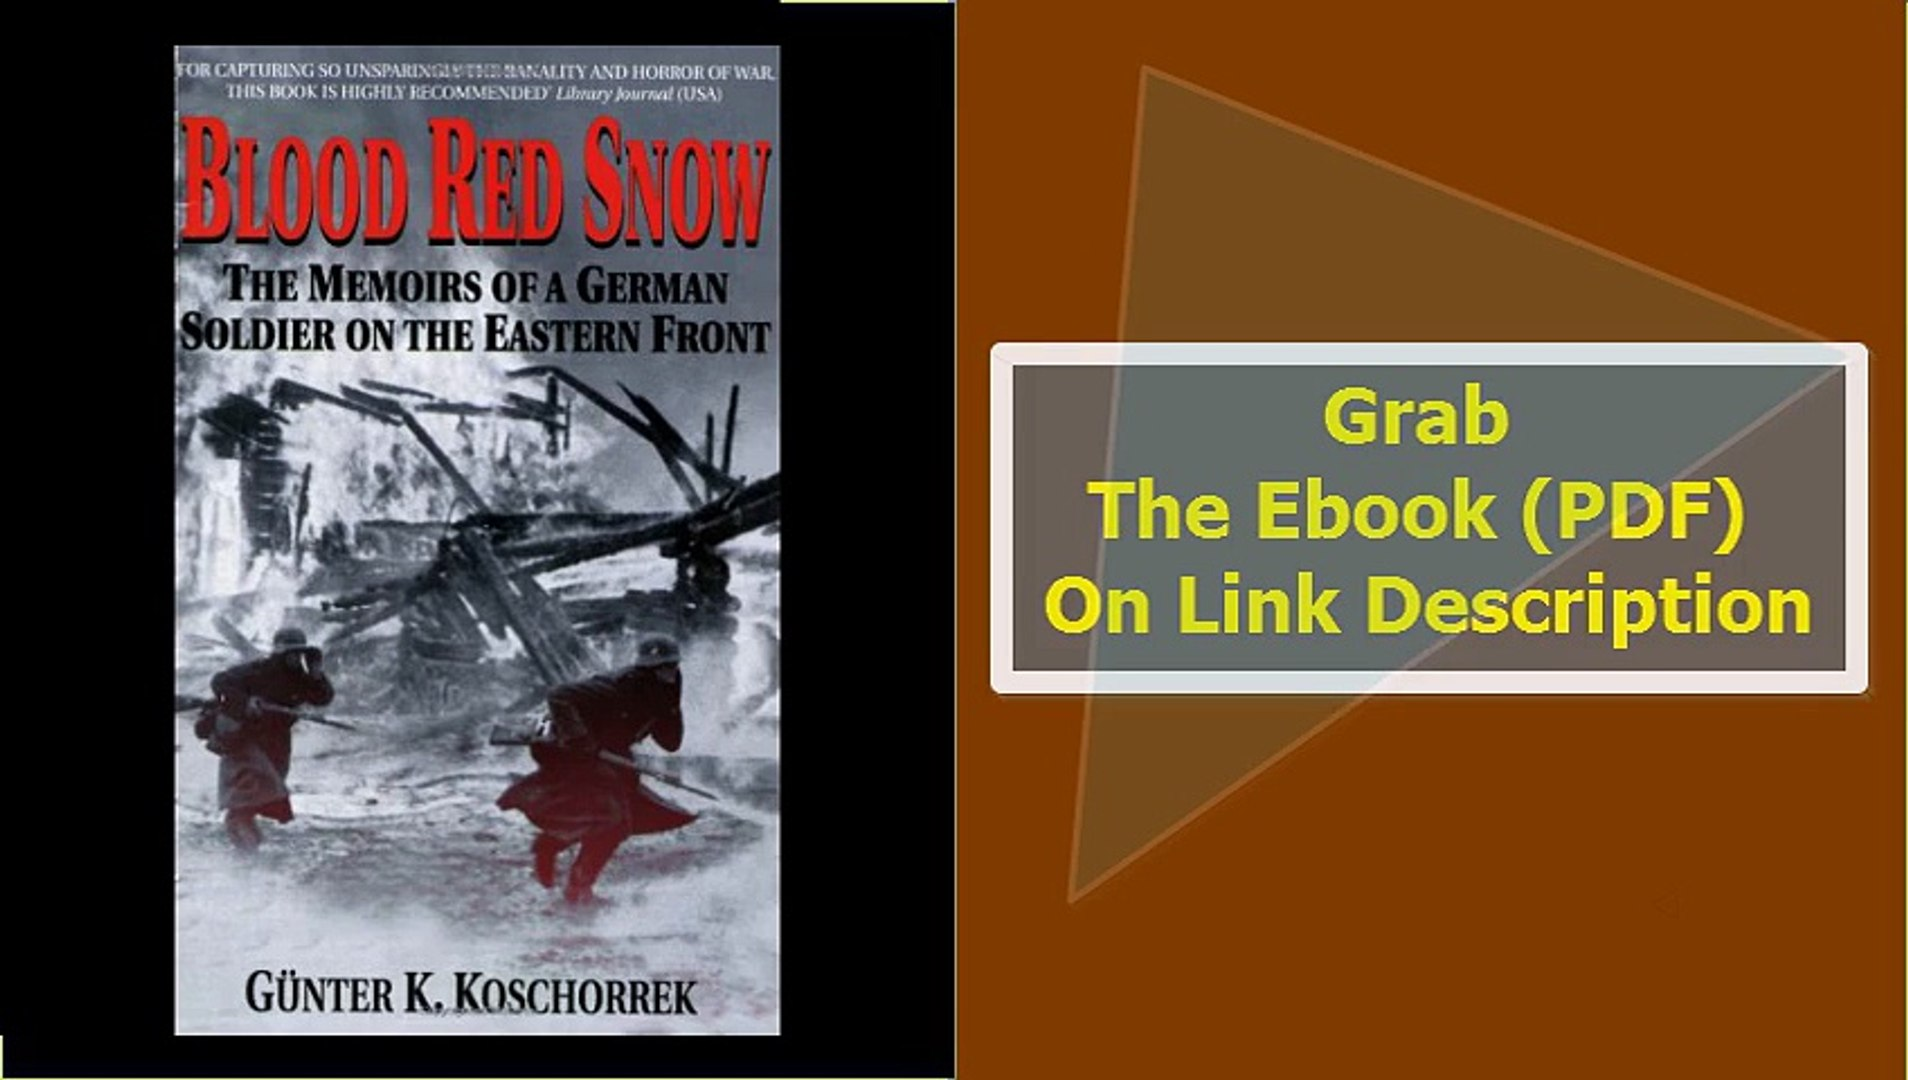 Blood Red Snow The Memoirs of a German Soldier on the Eastern Front